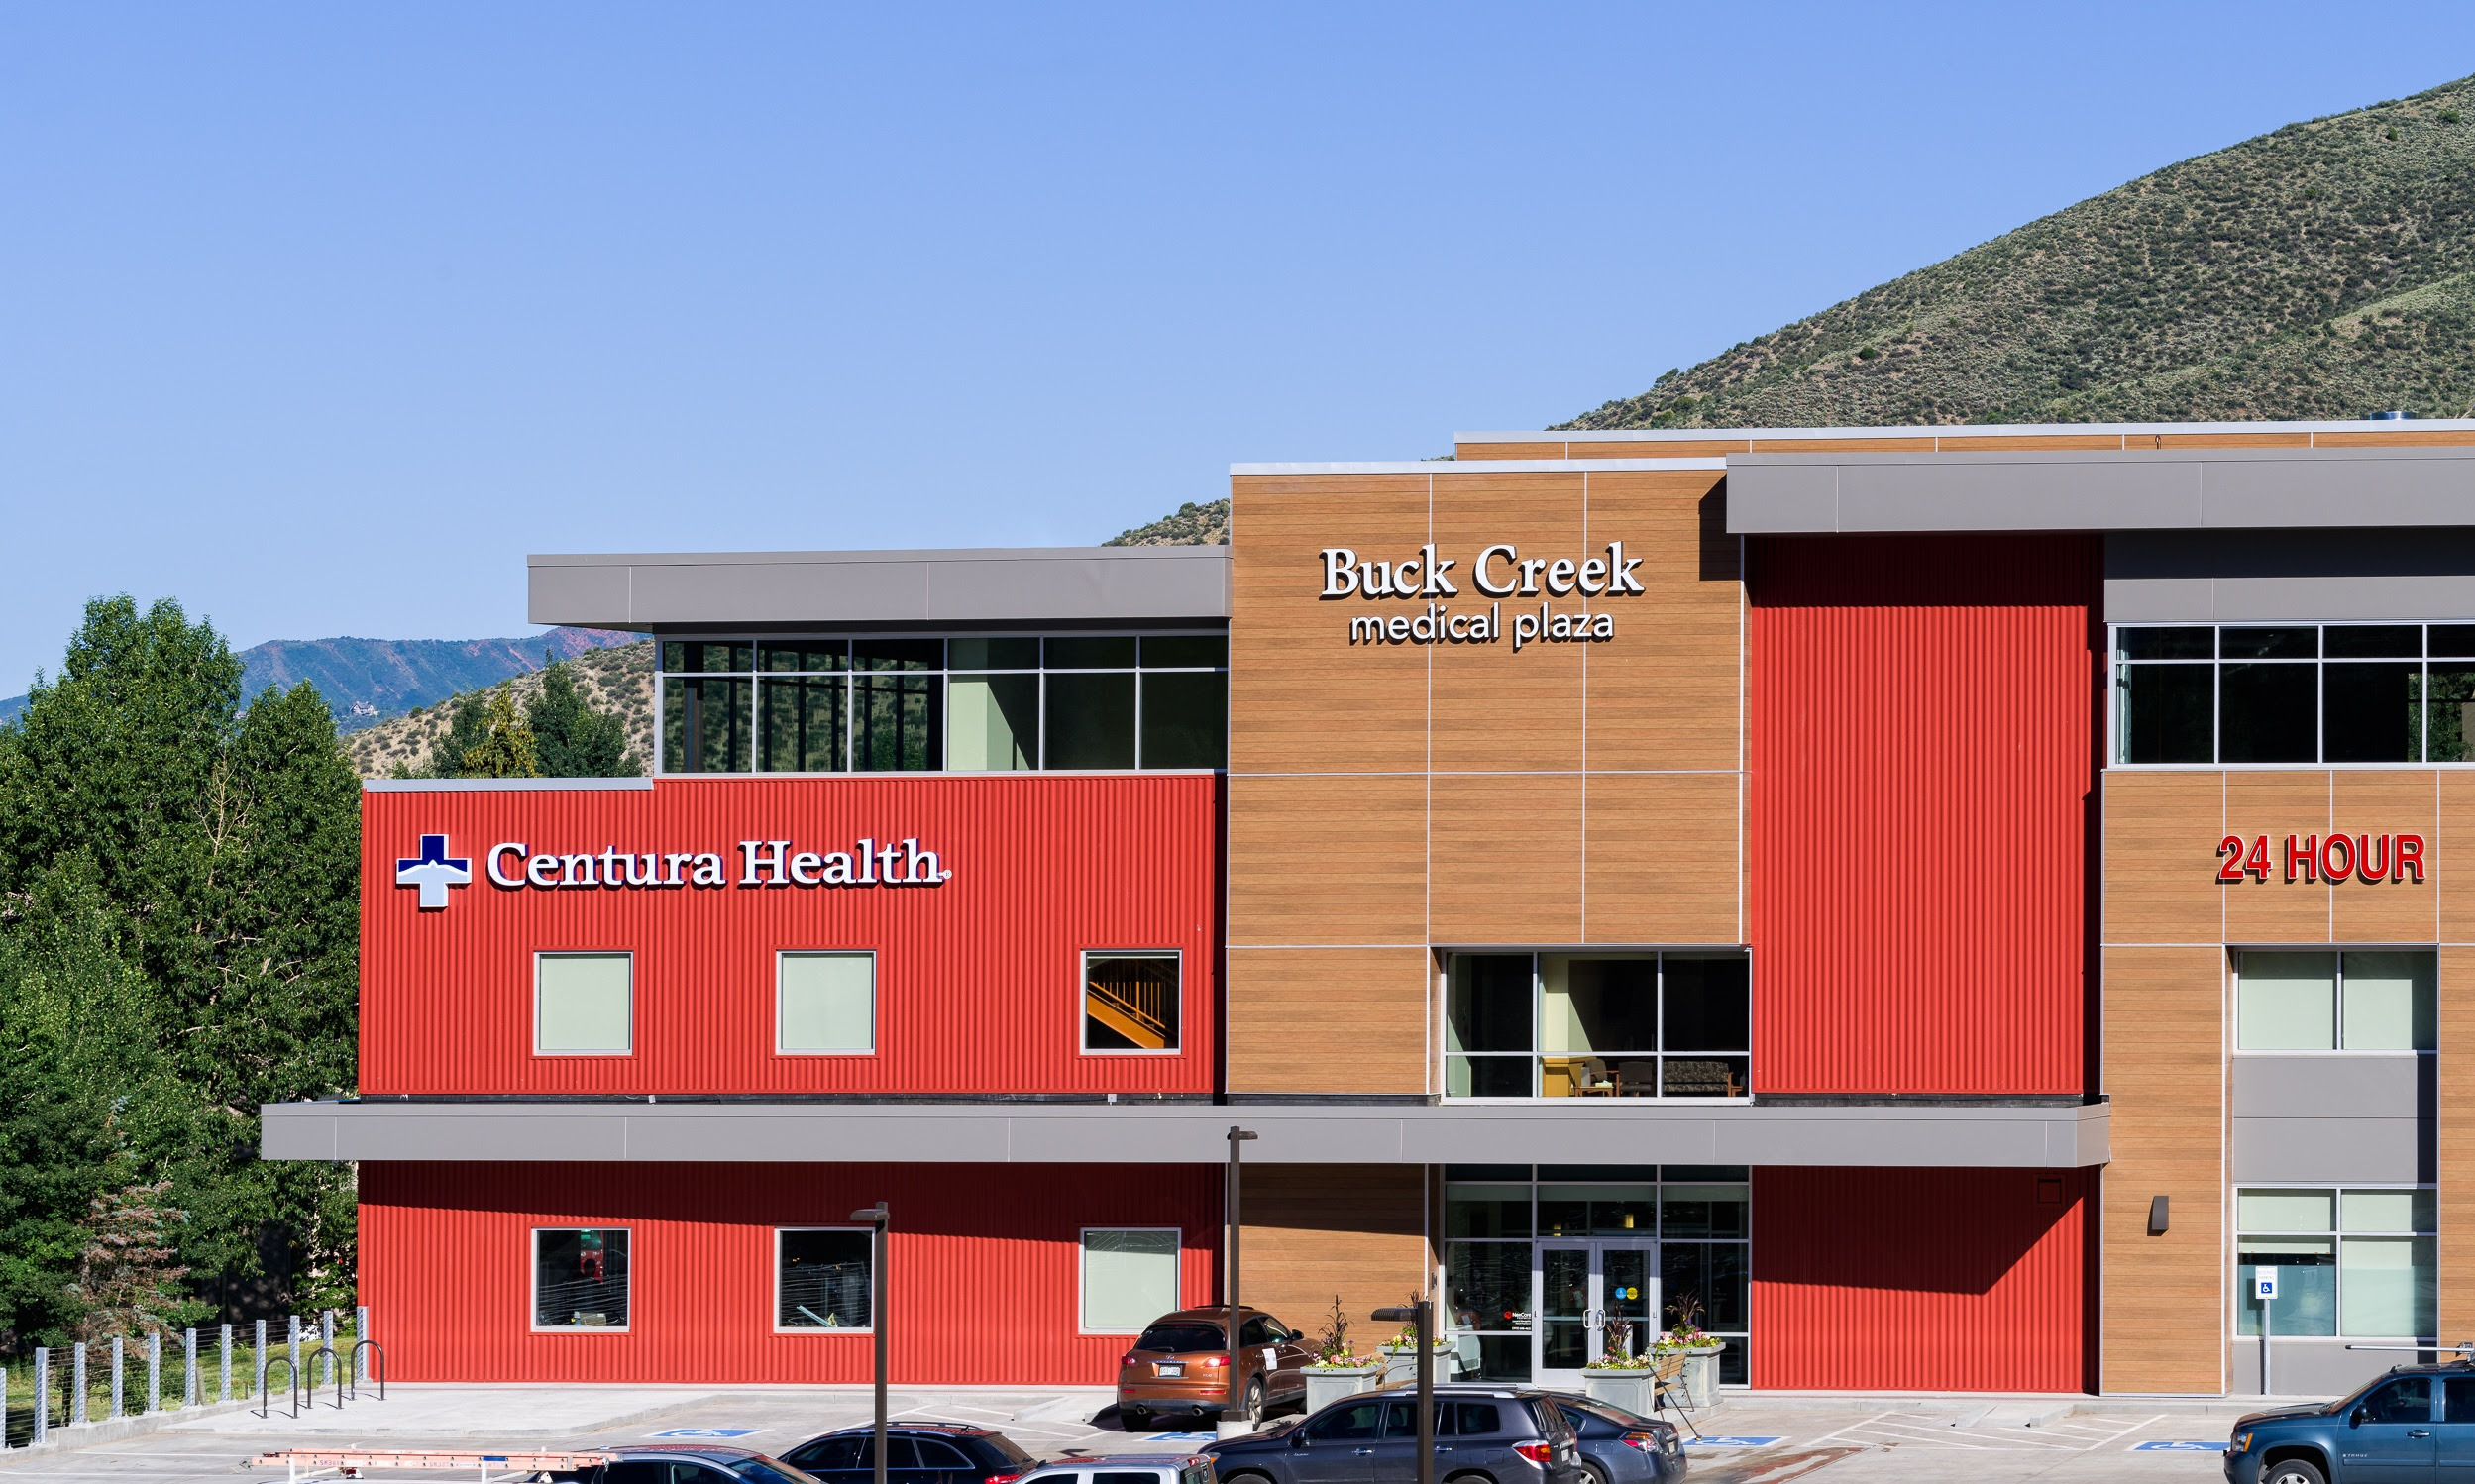 Buck Creek Medical Plaza